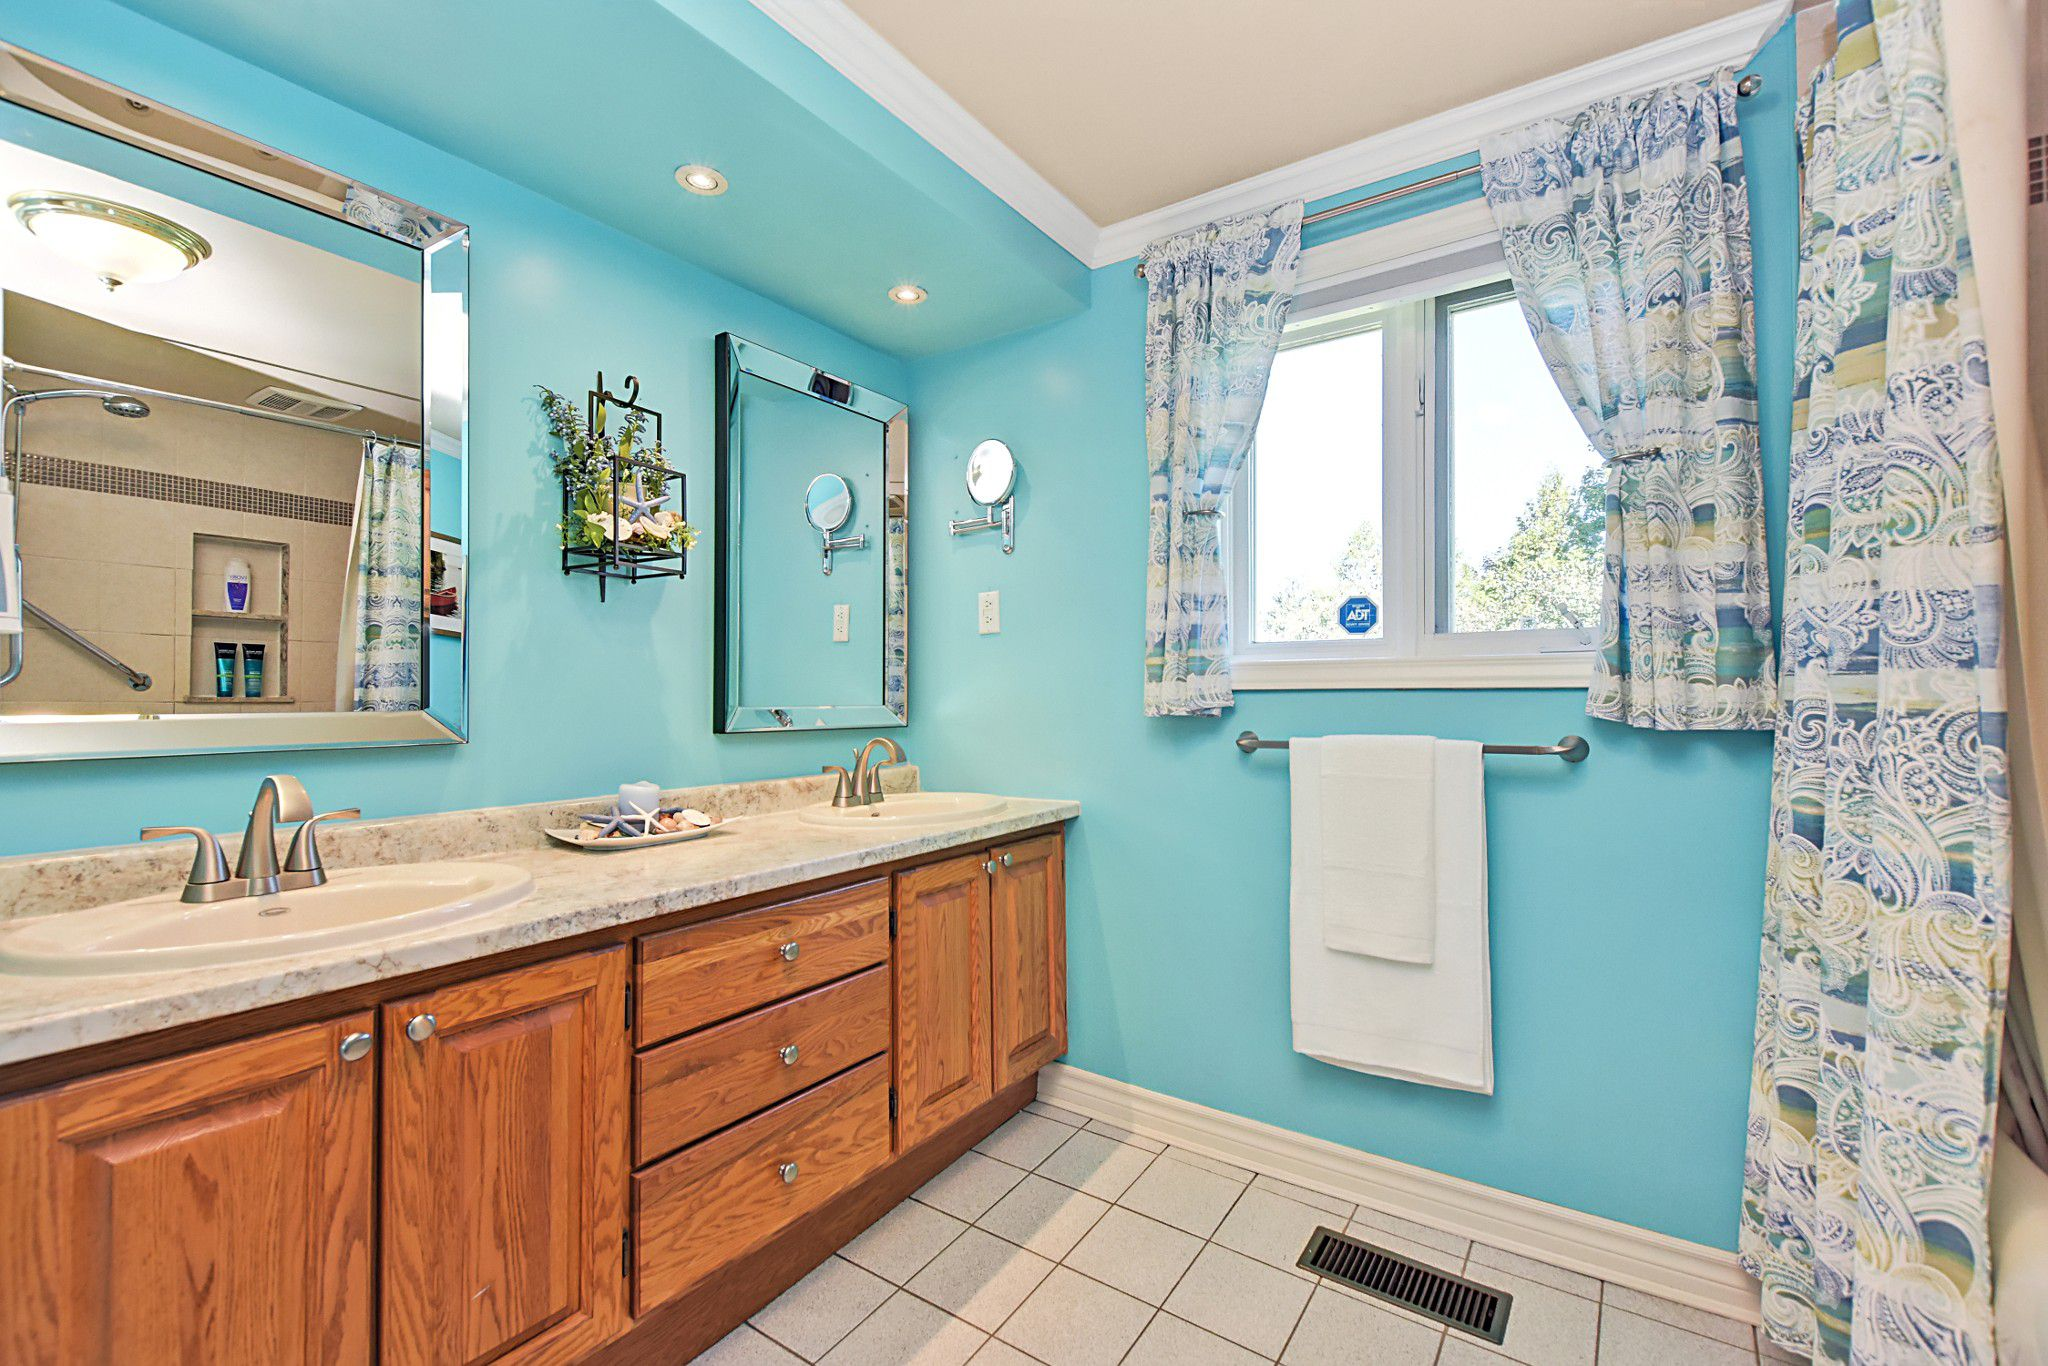 Photo 19: Photos: 5000 Dunning Road in Ottawa: Bearbrook House for sale